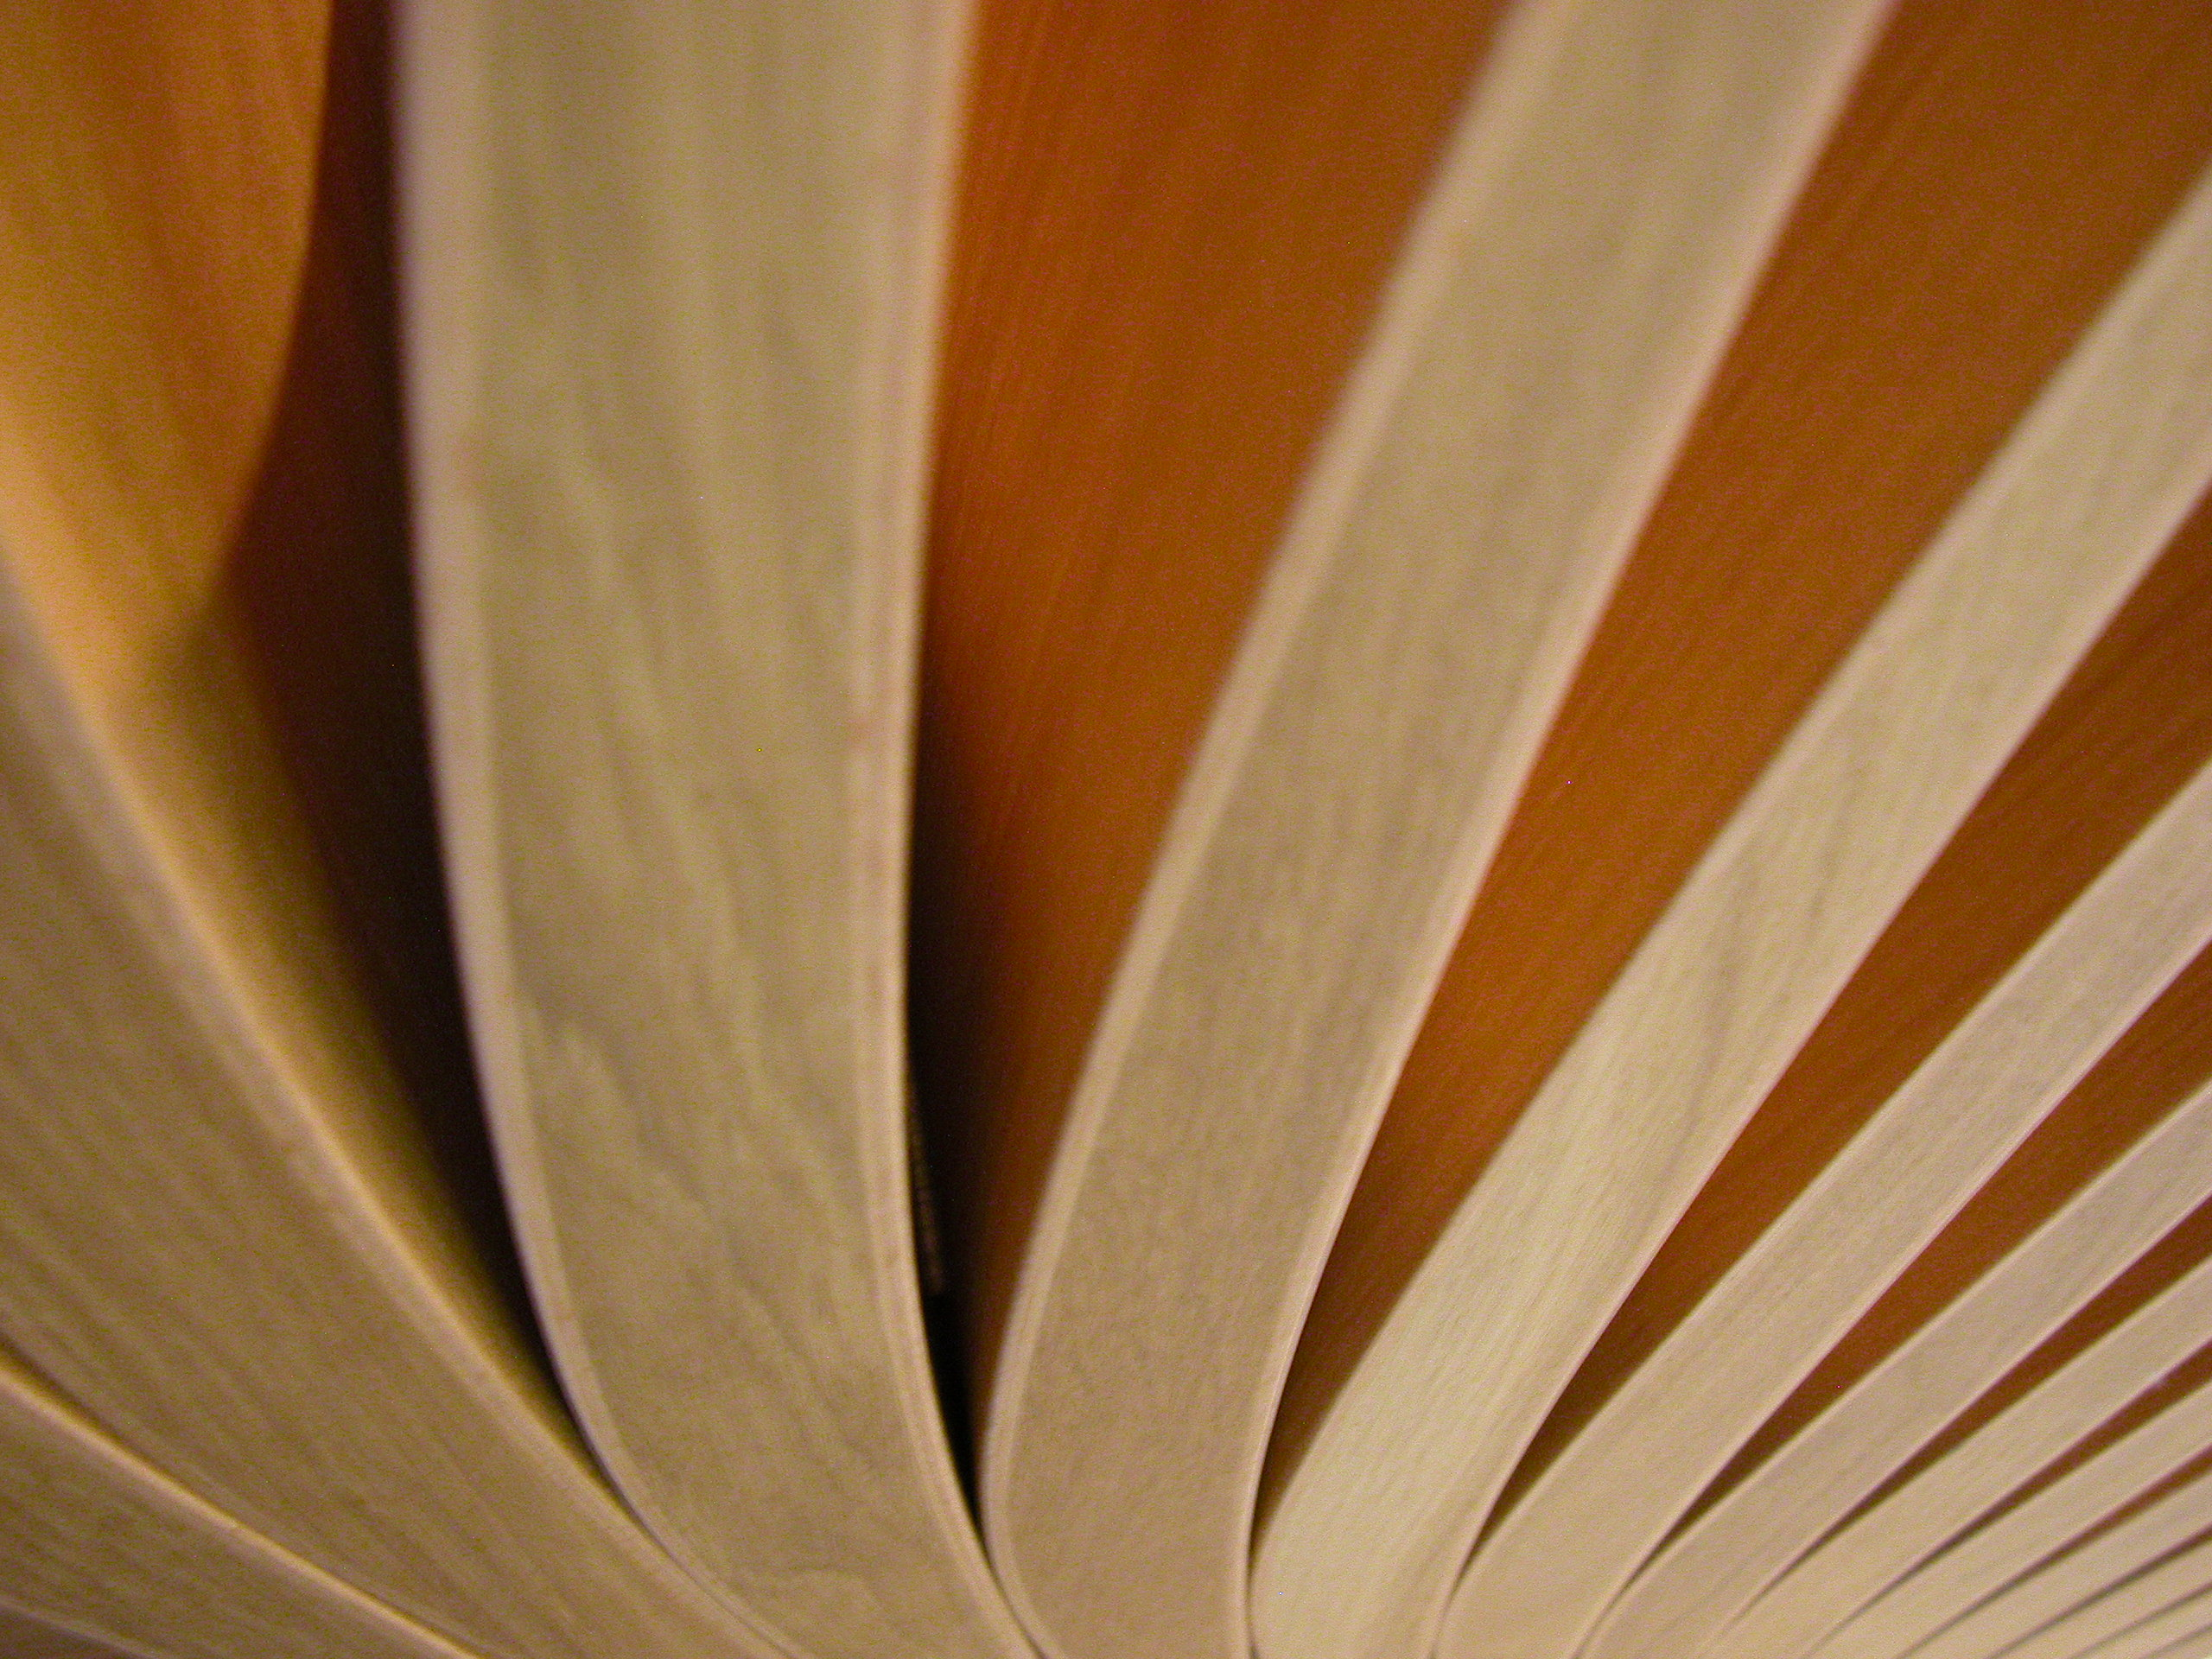 janneke wood bend curves very thick pages of a book :)